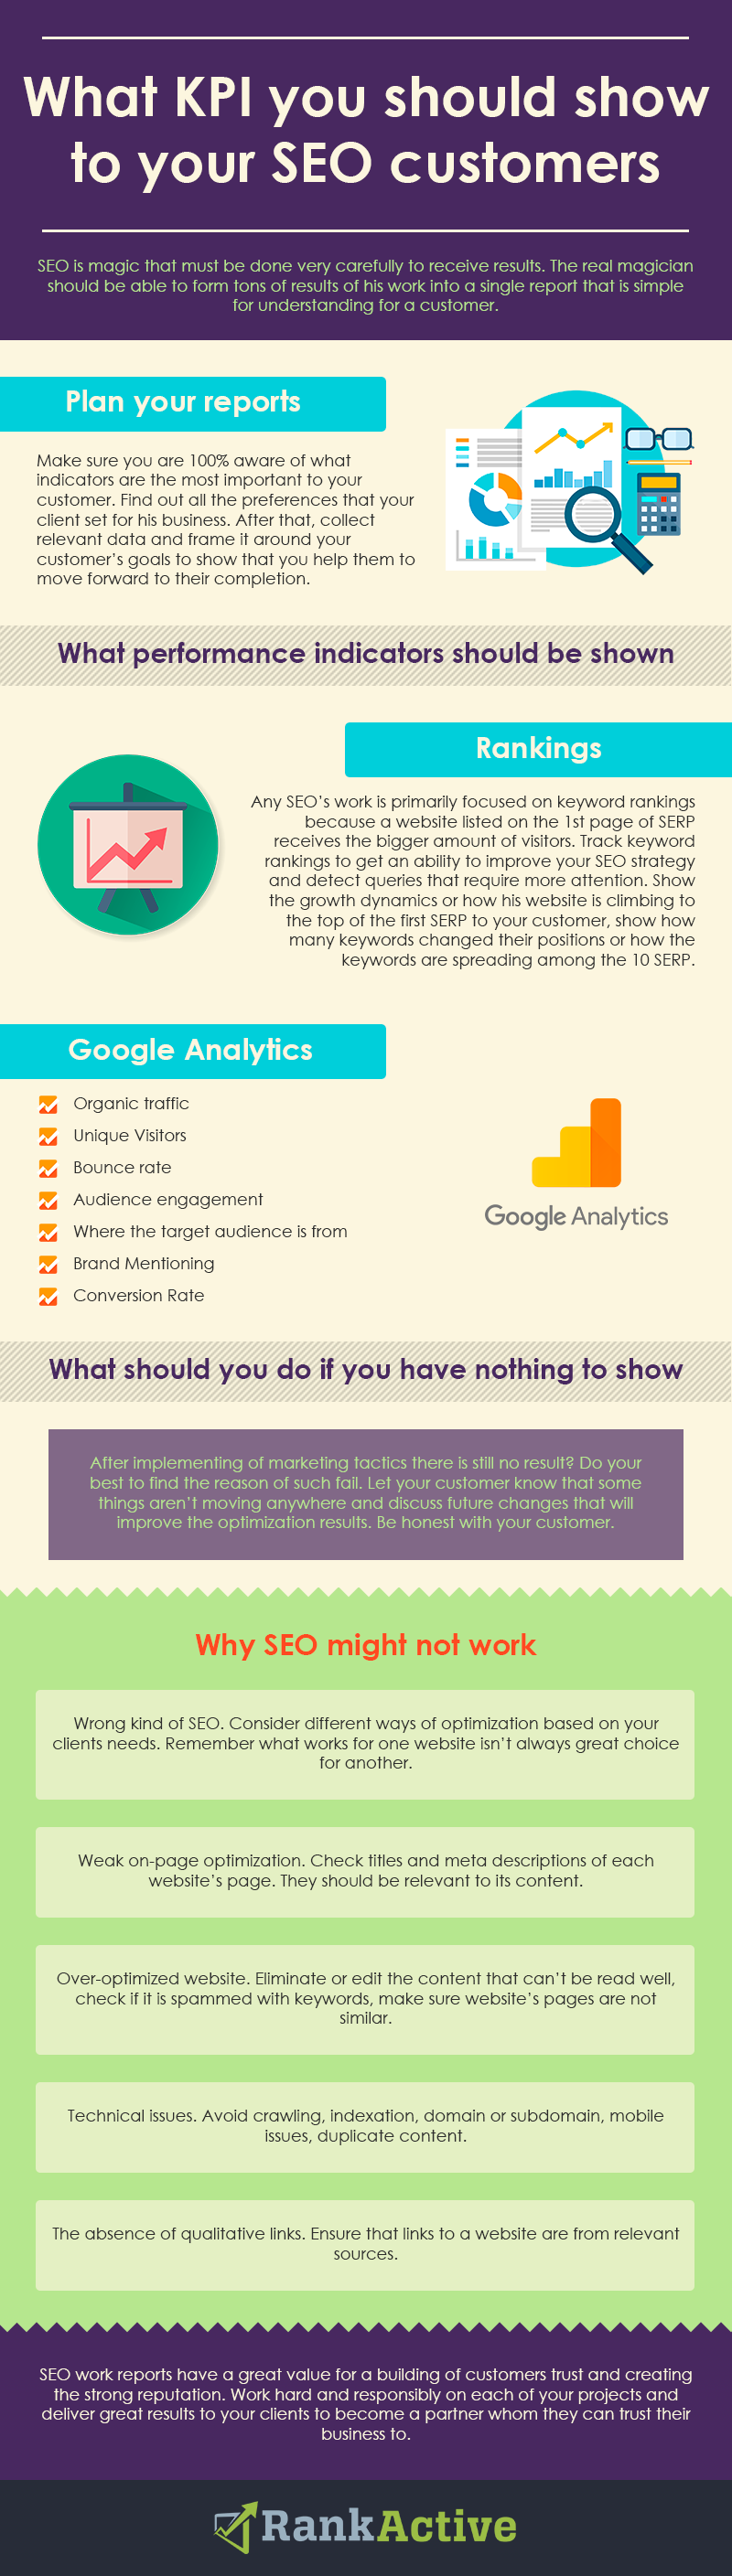 What KPI you should show to your SEO customers